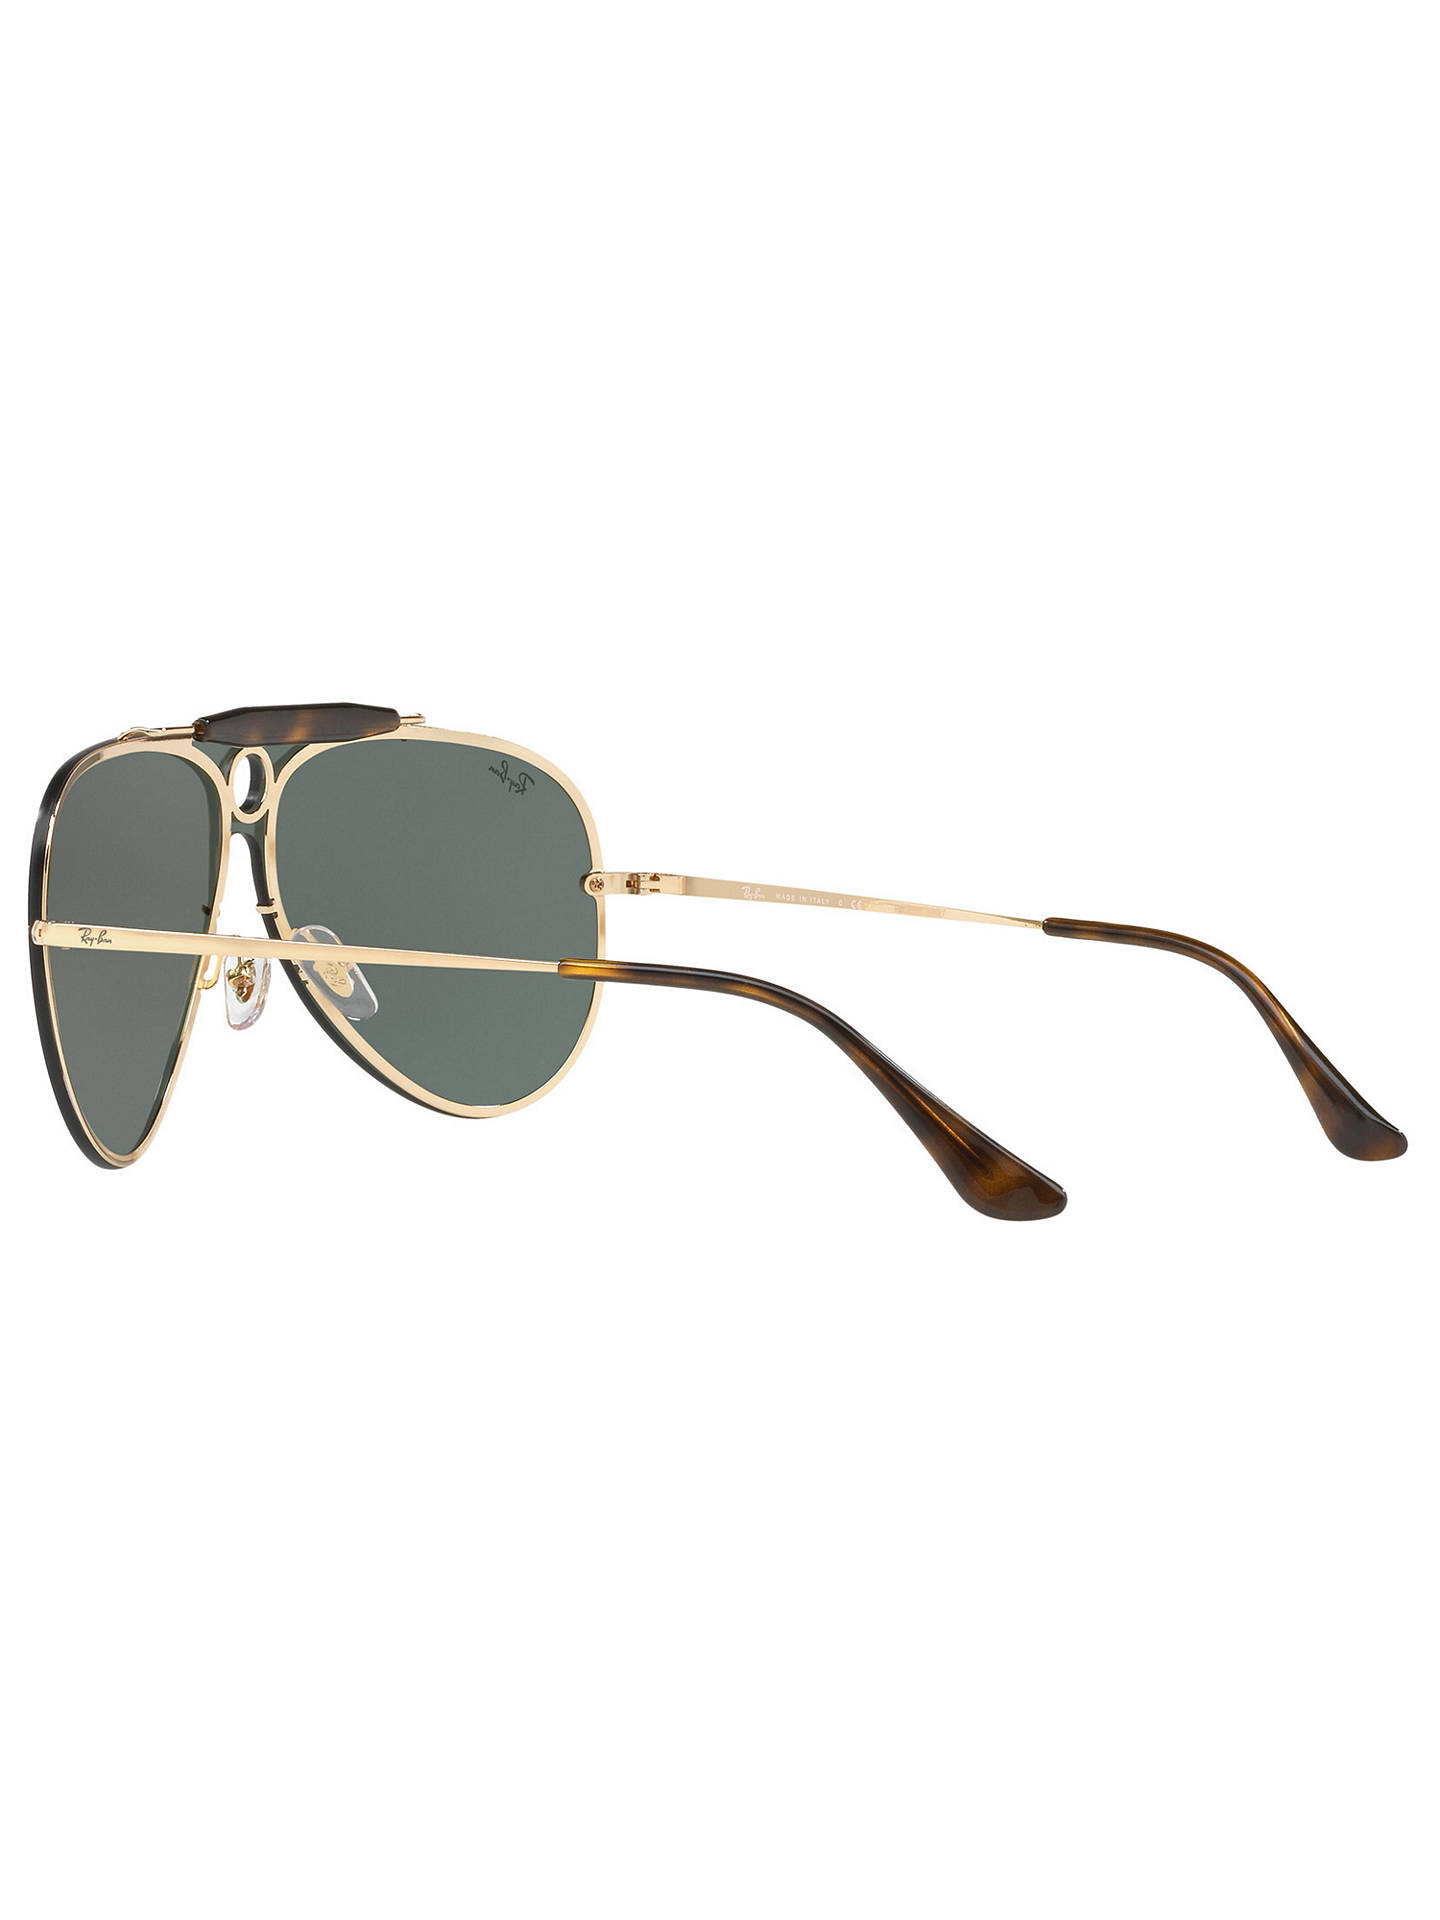 BuyRay-Ban RB3581N Blaze Shooter Aviator Sunglasses, Gold/Green Online at johnlewis.com